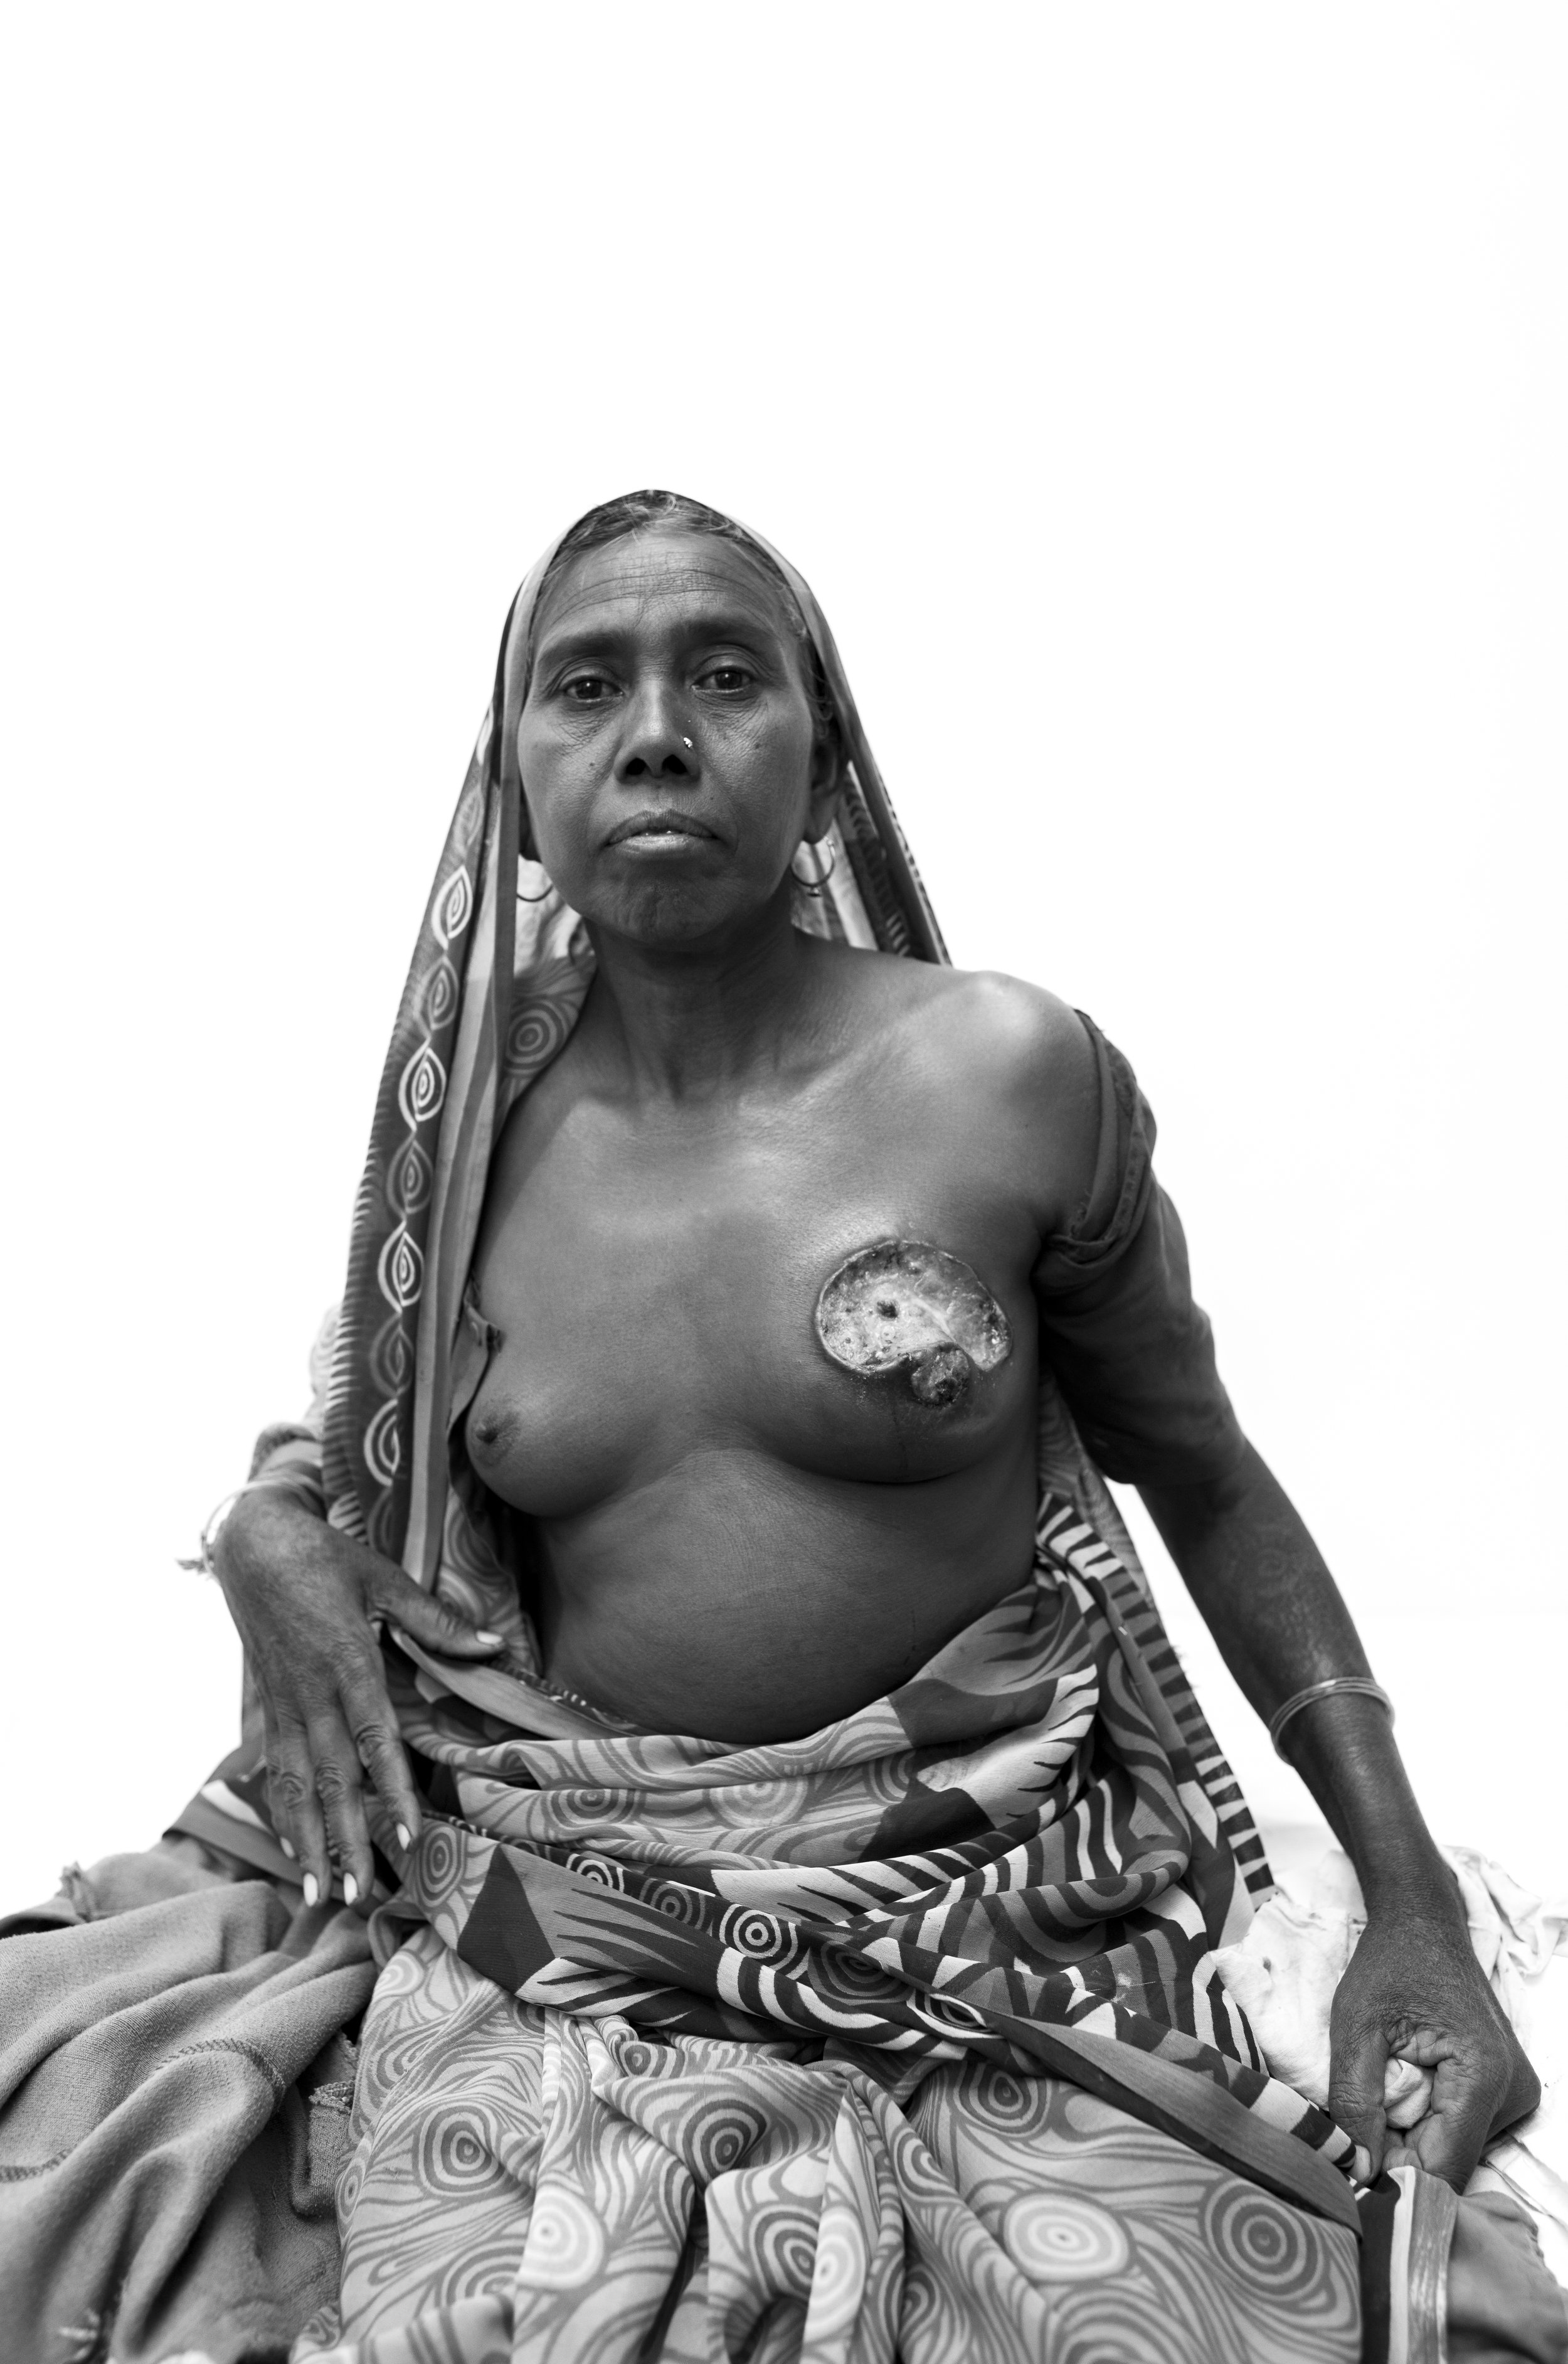 A patient in Melghat, India and a moment where as a photographer you're really left changed after the capture. During pre-operative rounds I was asked to shoot this patient.She is from the tribes surrounding the hospital and was awaiting for her mastectomy procedure the following day. Clearly at this far stage it could only be palliative treatment. I've thought about this image for 10 months since I took it, and looking at it now I see a woman with incredible strength and pride who represents one side of poverty - limited access to healthcare.